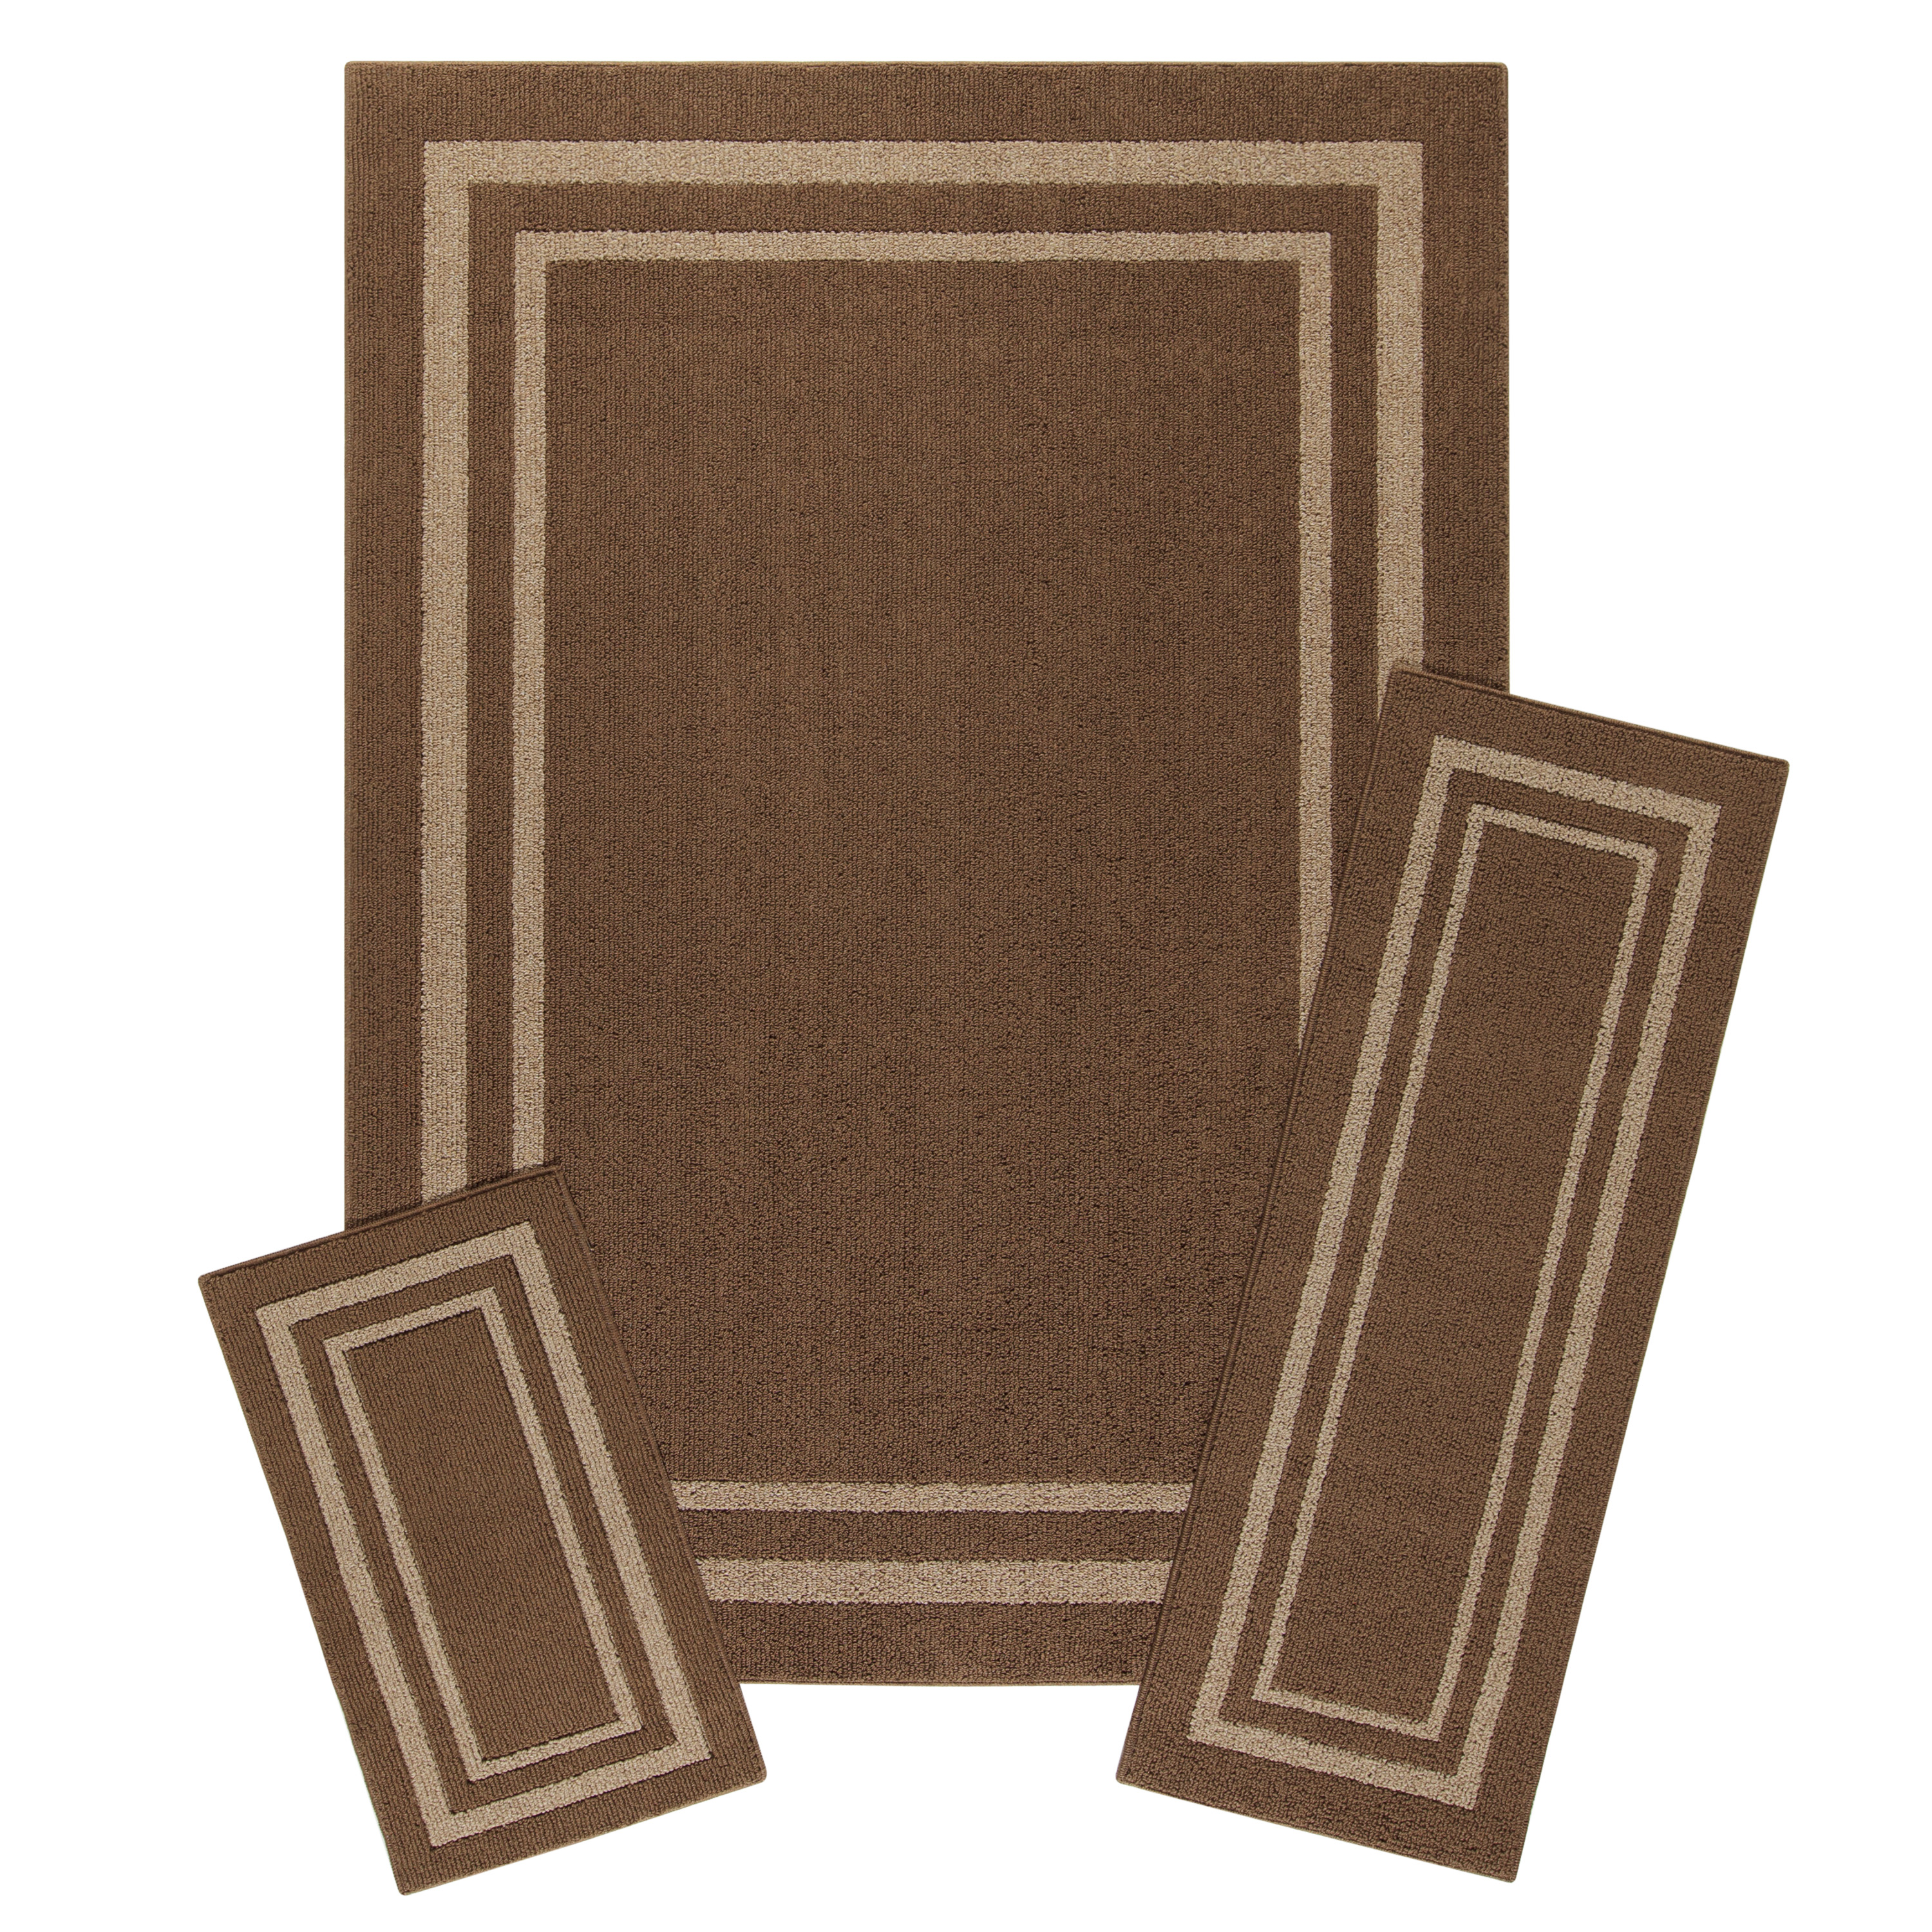 Mainstays Frame Border Tufted 3-Piece Area Rug Set, Multiple Colors